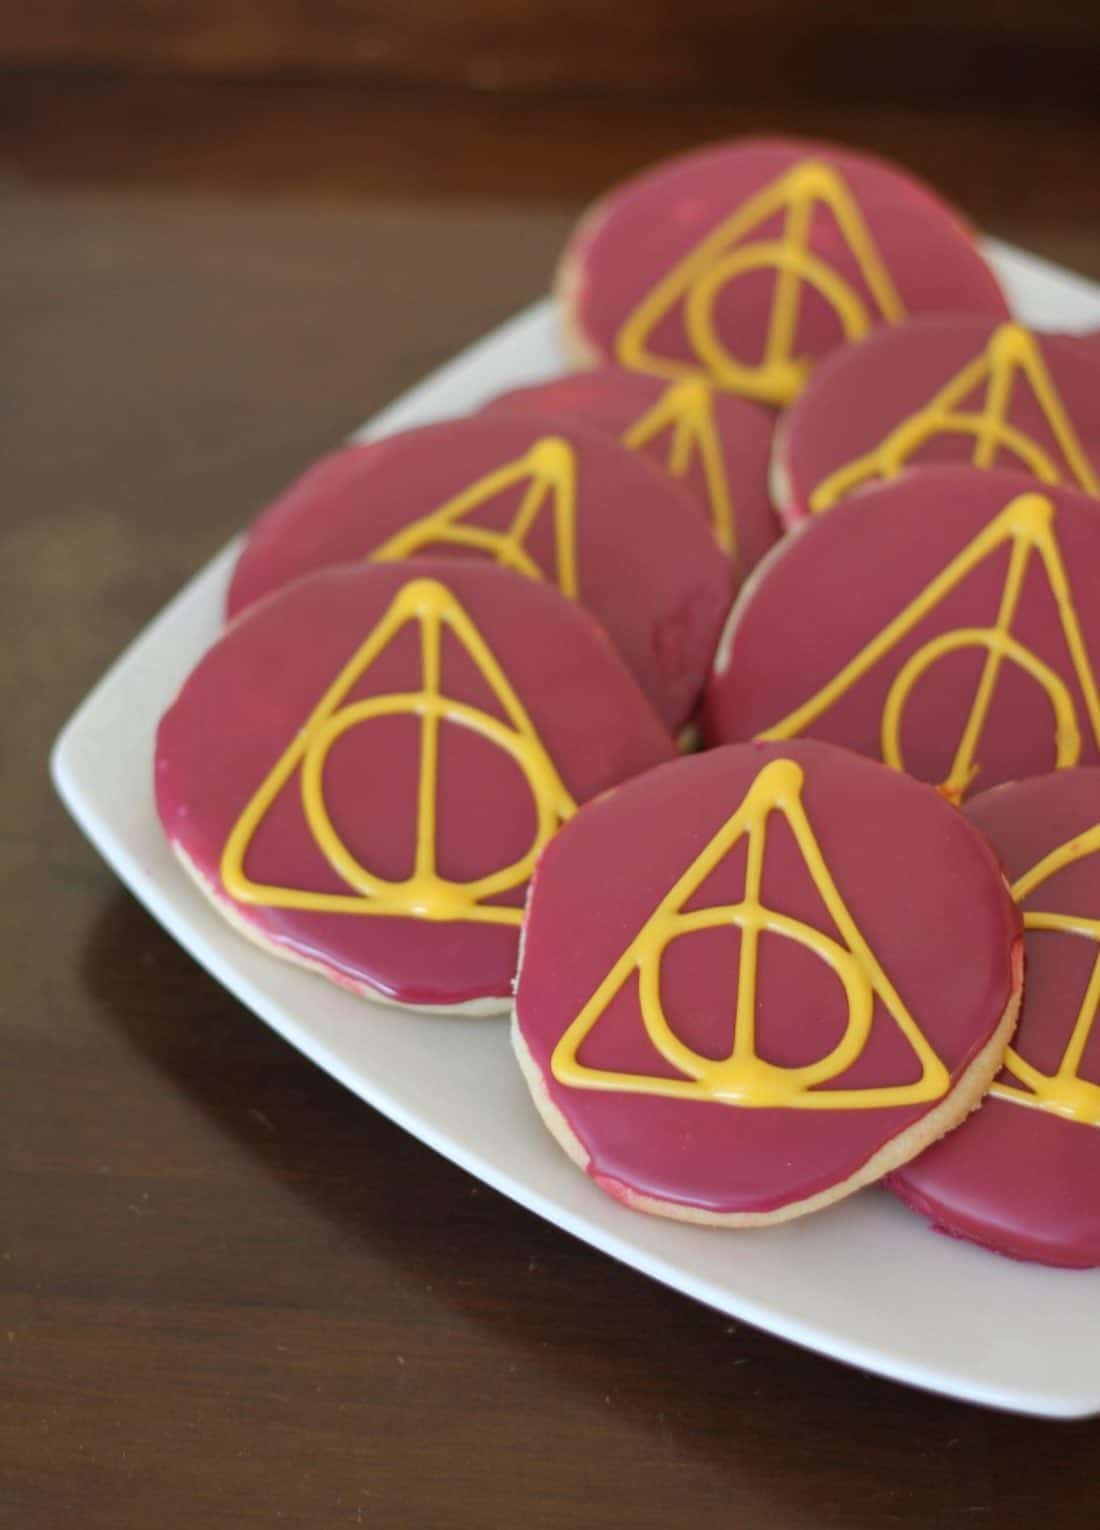 Deathly Hallows sugar cookies in a white plate